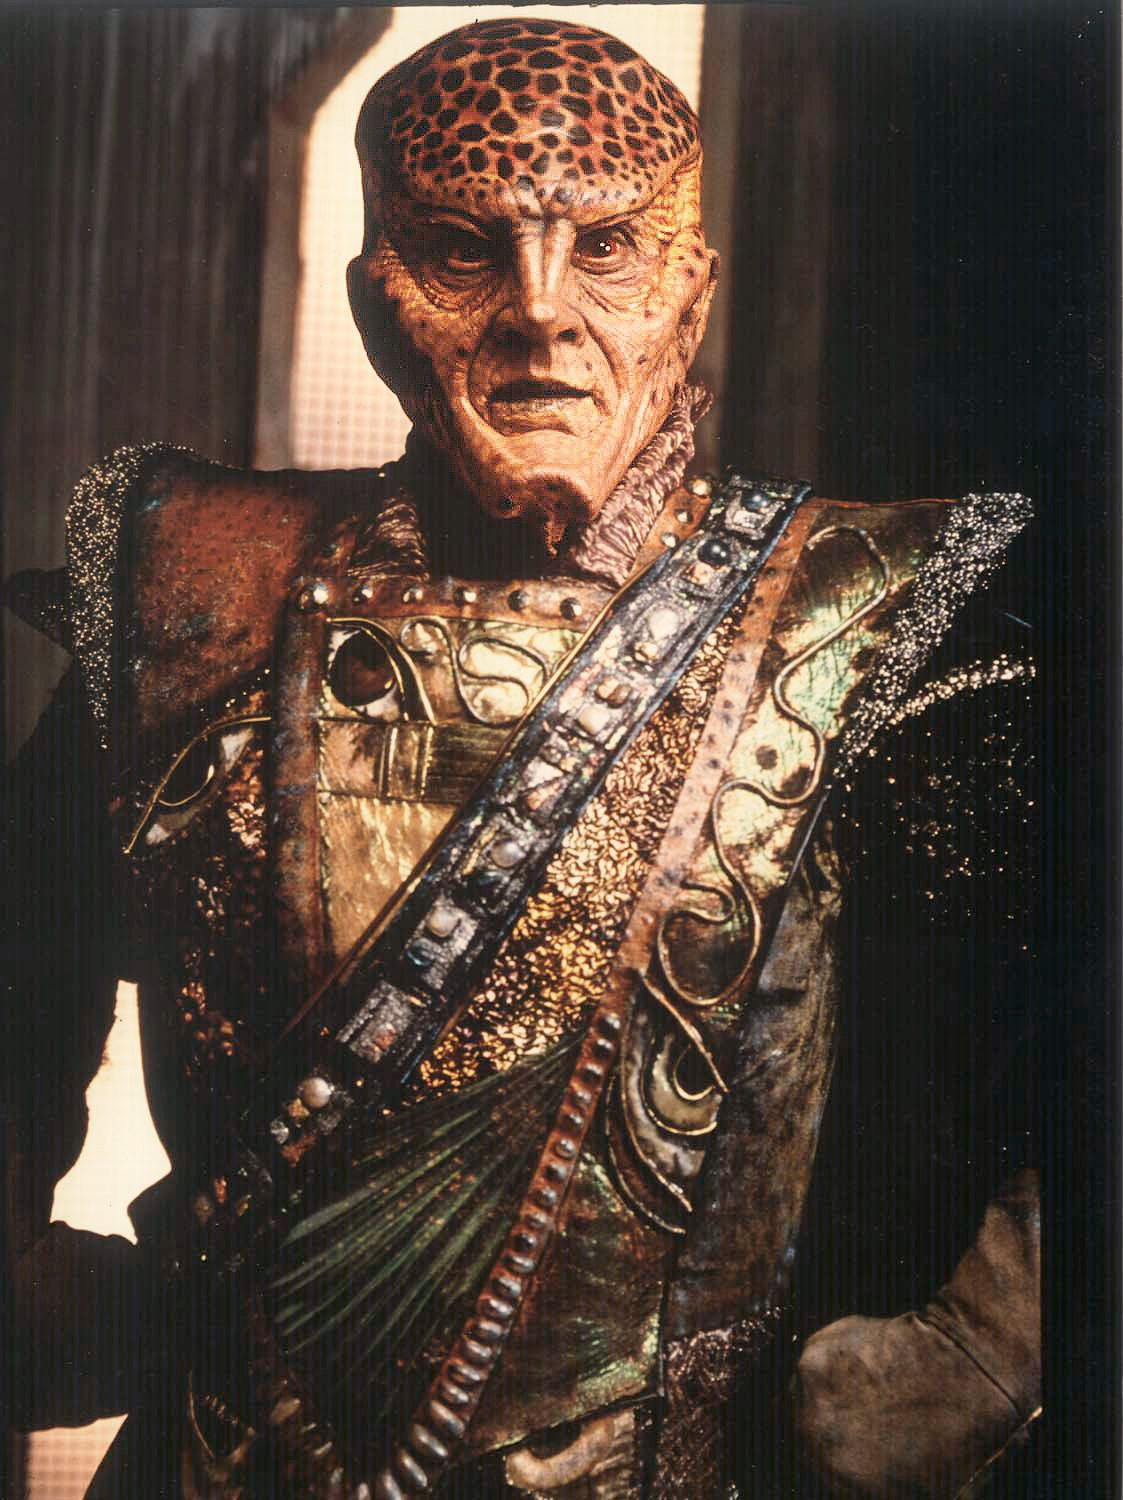 G Kar Babylon 5 1994 Actor Andreas Katsulas Makeup Optic Nerve Studios